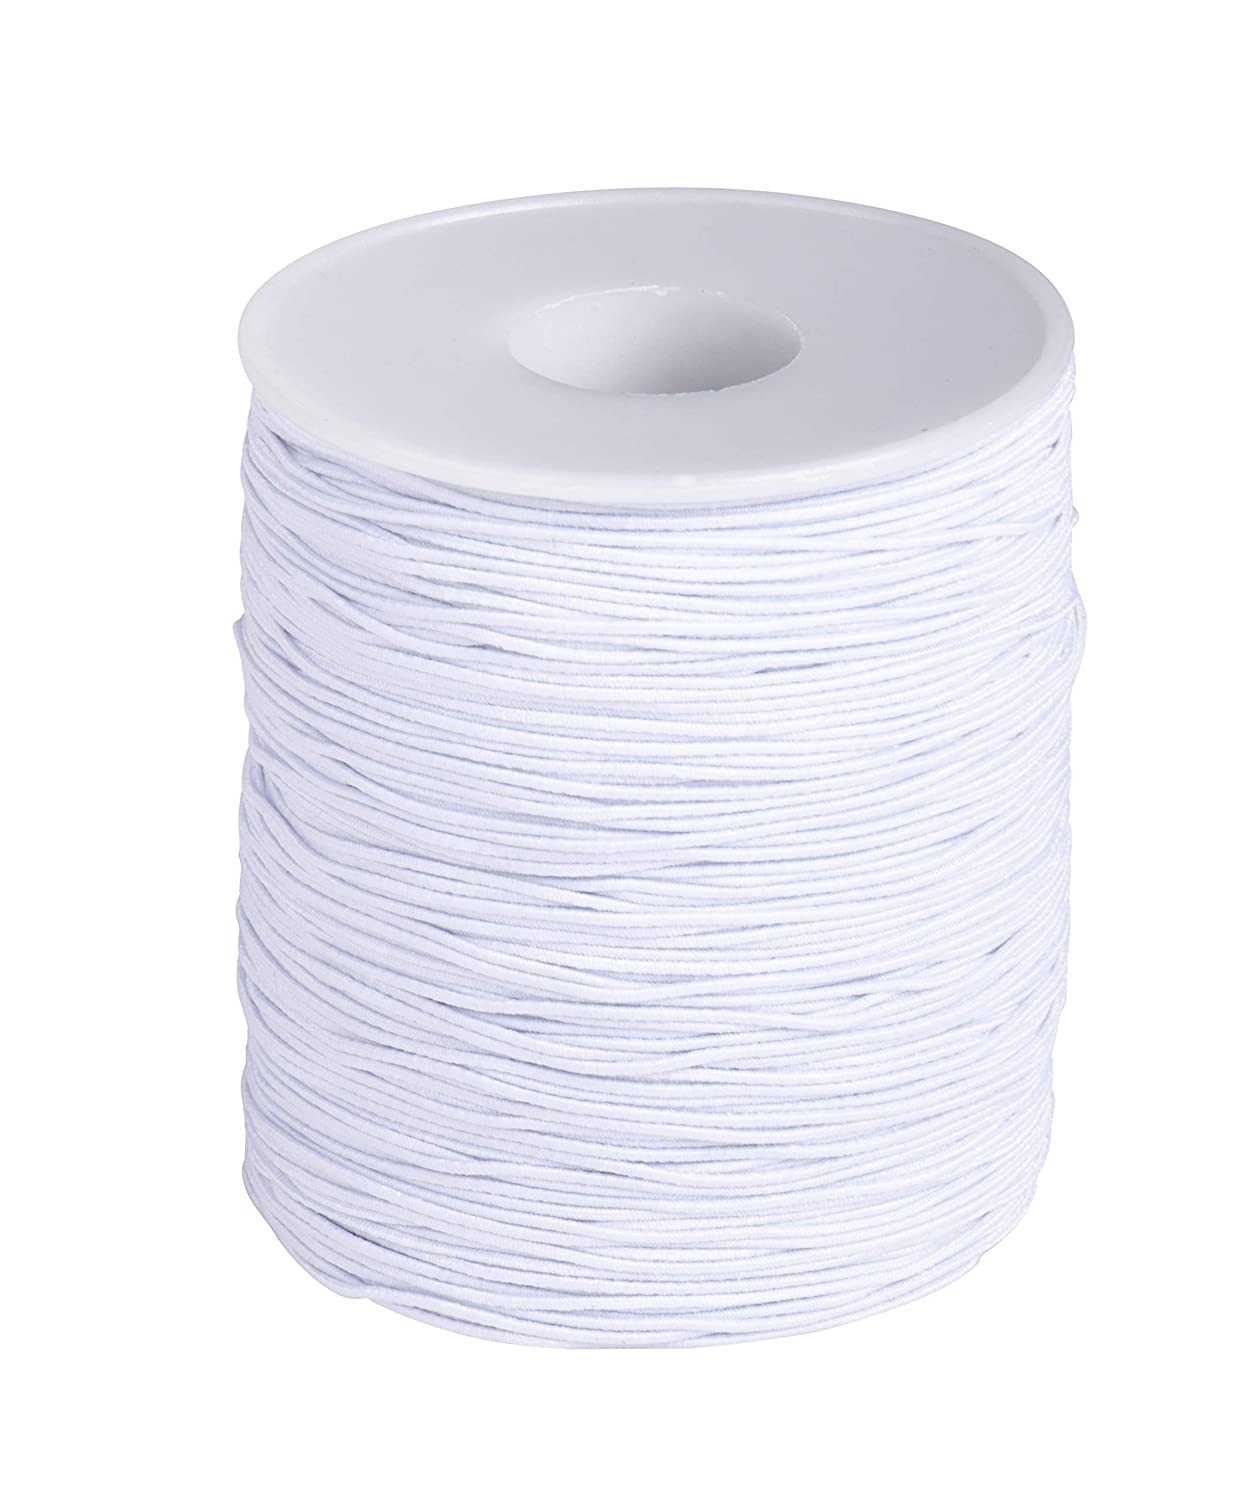 0.7mm White Elastic Cord - 200-Yard Stretch Round String for Beading Crafting Jewelry Bracelet Making, Includes Spool, 600 Feet Juvale